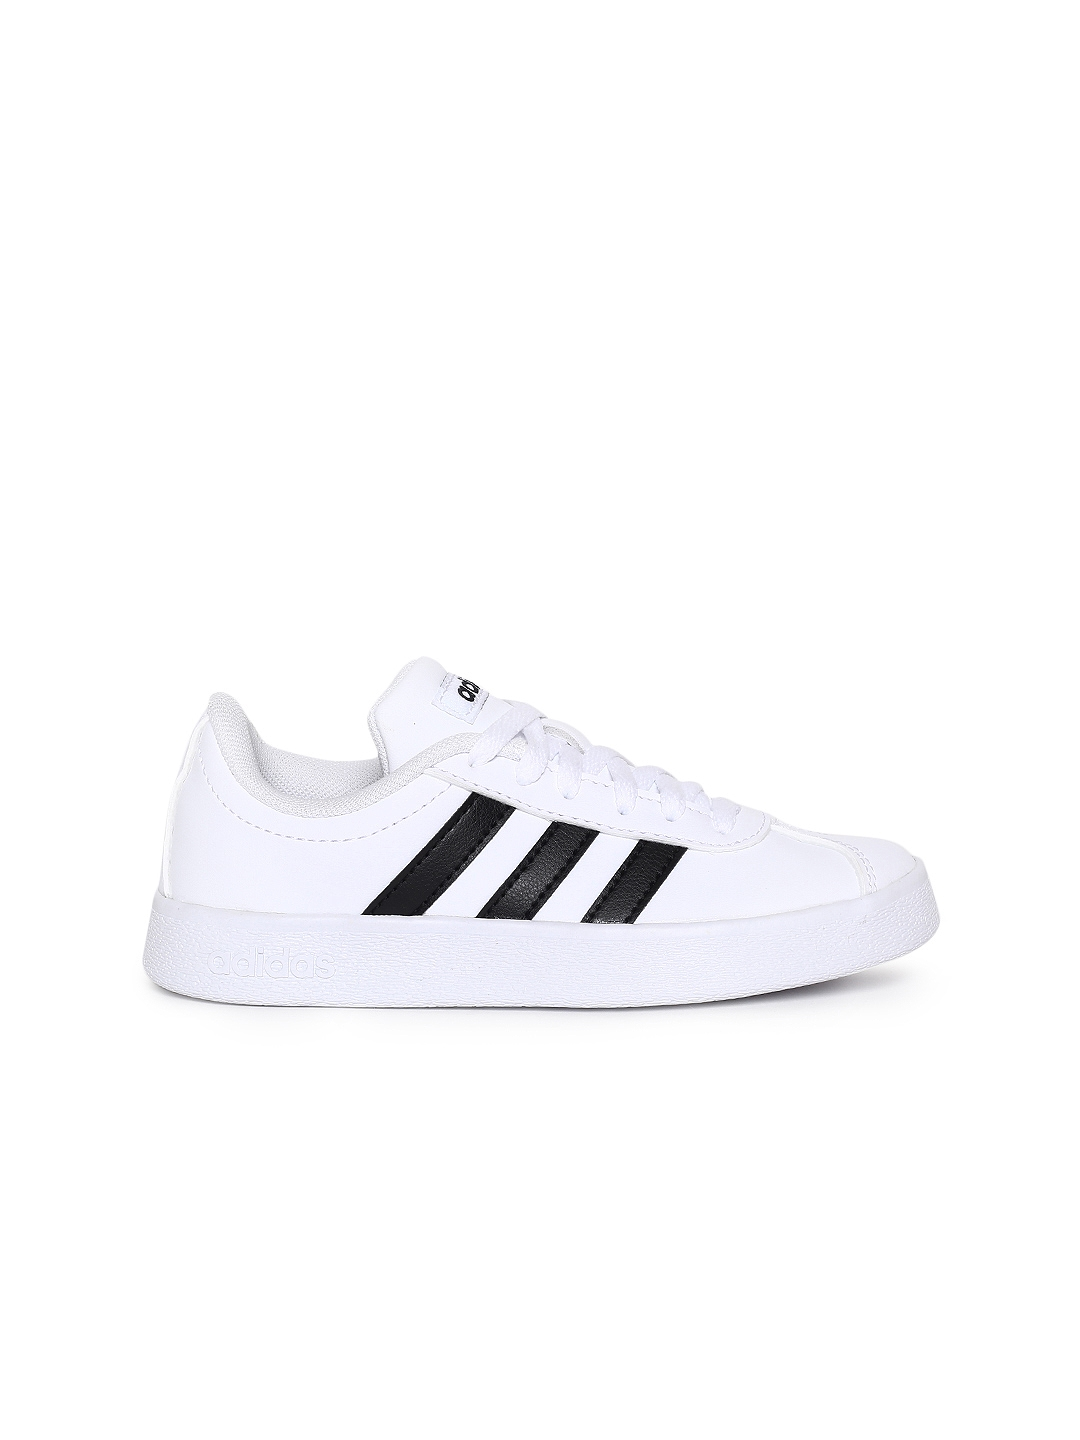 311bdc3bb77 Buy ADIDAS Kids White Solid VL COURT 2.0 K Tennis Shoes - Casual ...